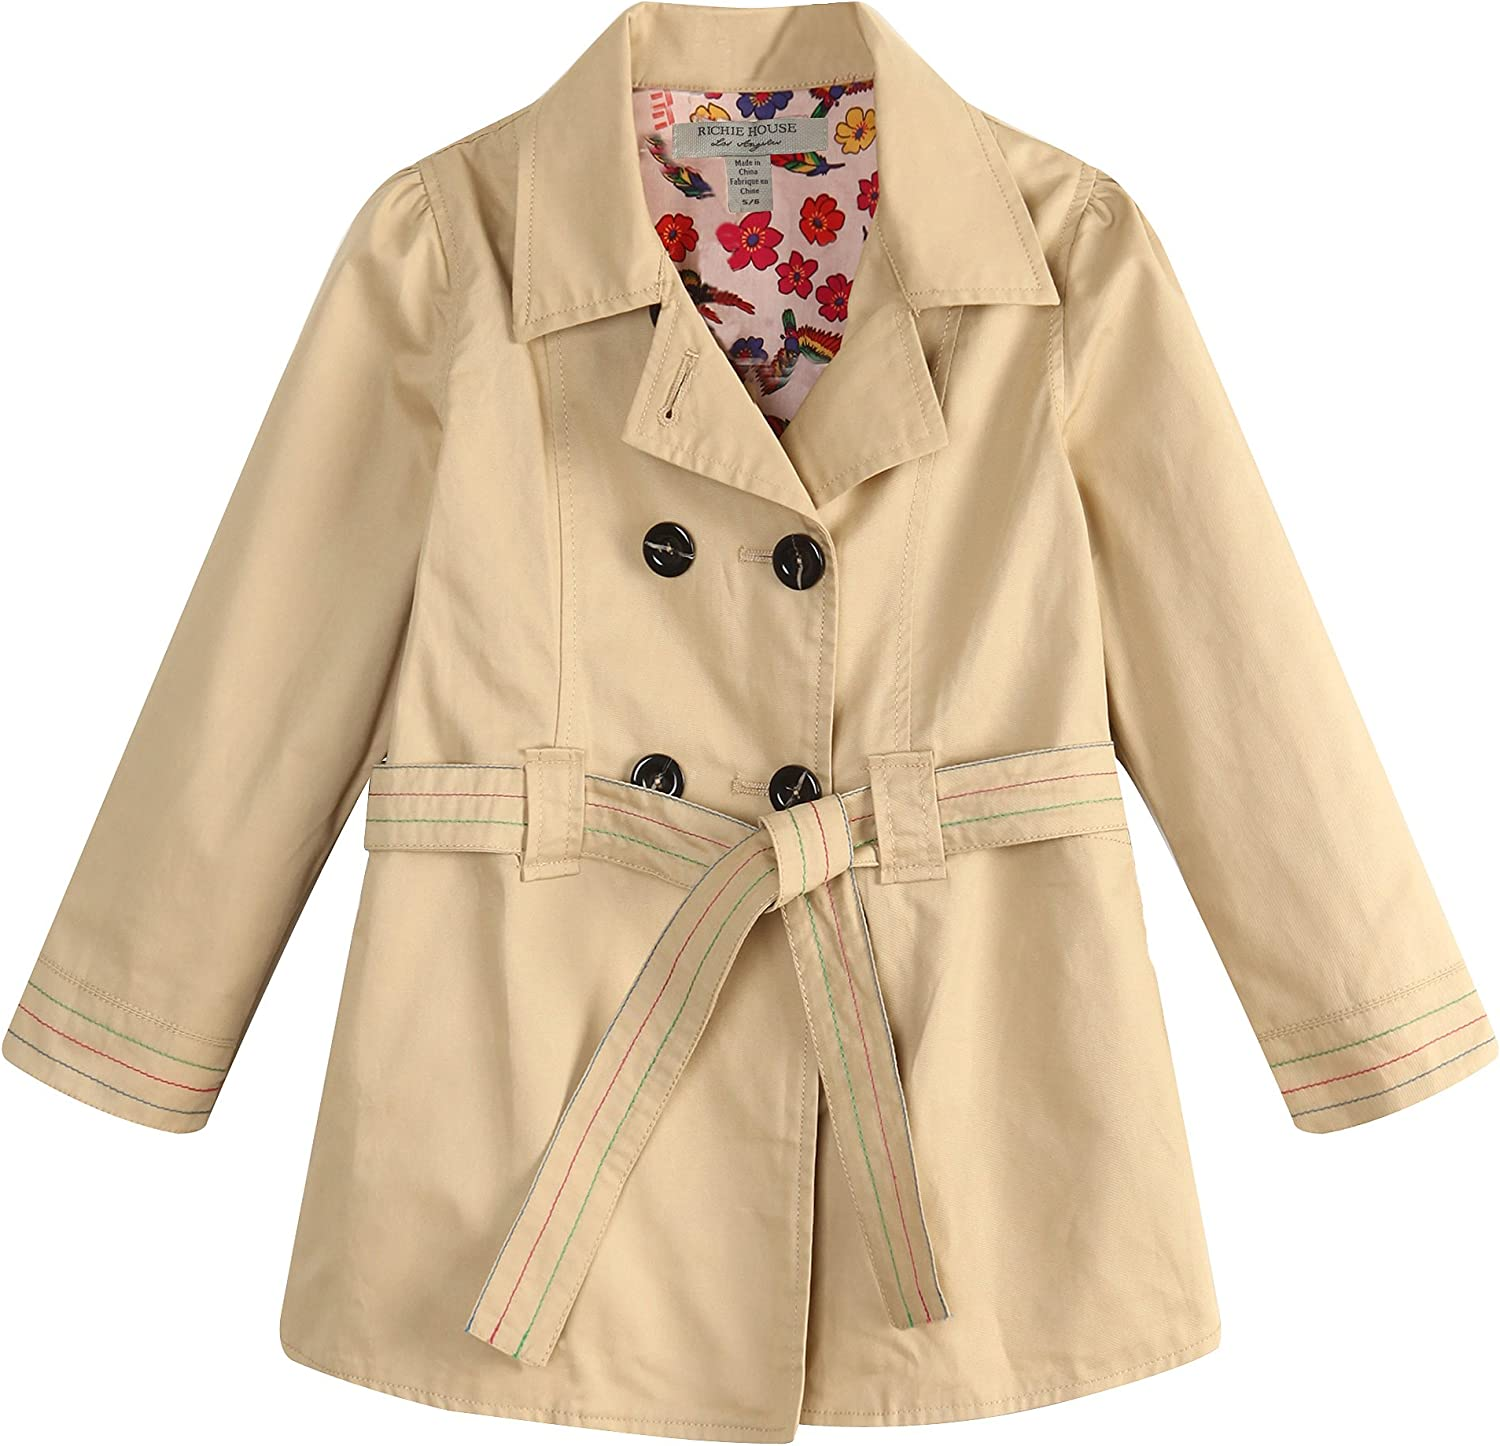 Richie House Big Girls' Colored Trench Coat with Floral Lining Fabric Rh0768